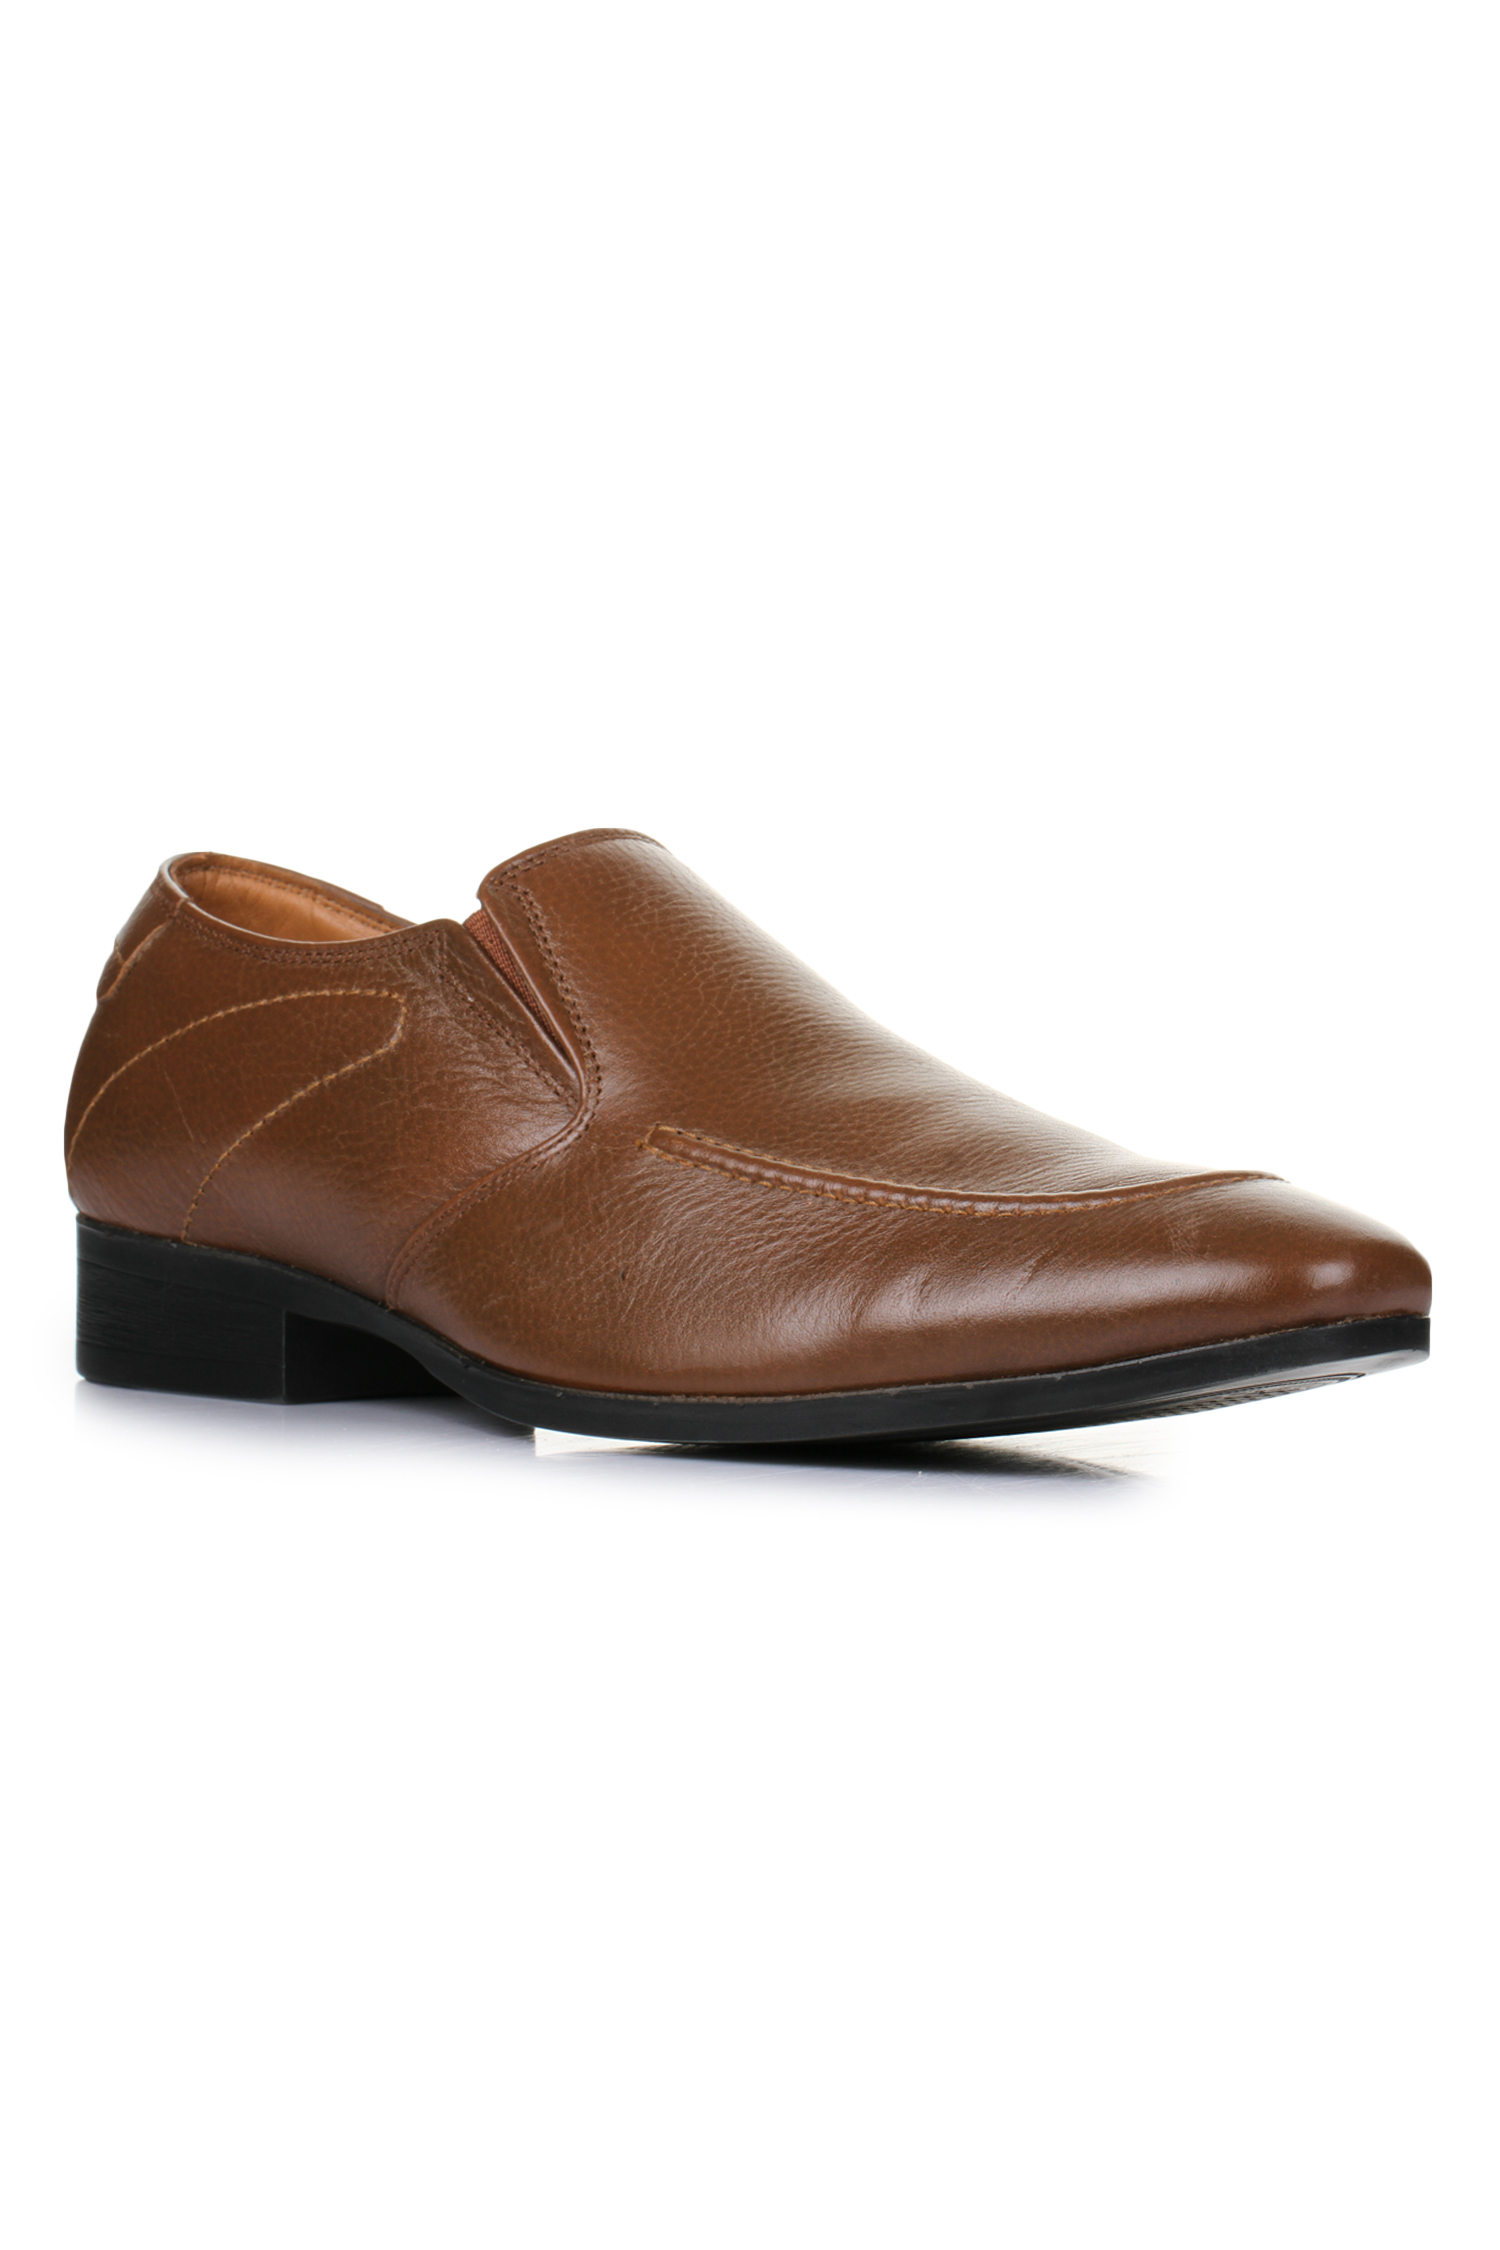 Liberty | Liberty FORTUNE Formal Slip-ons OMH-304_BROWN For - Men